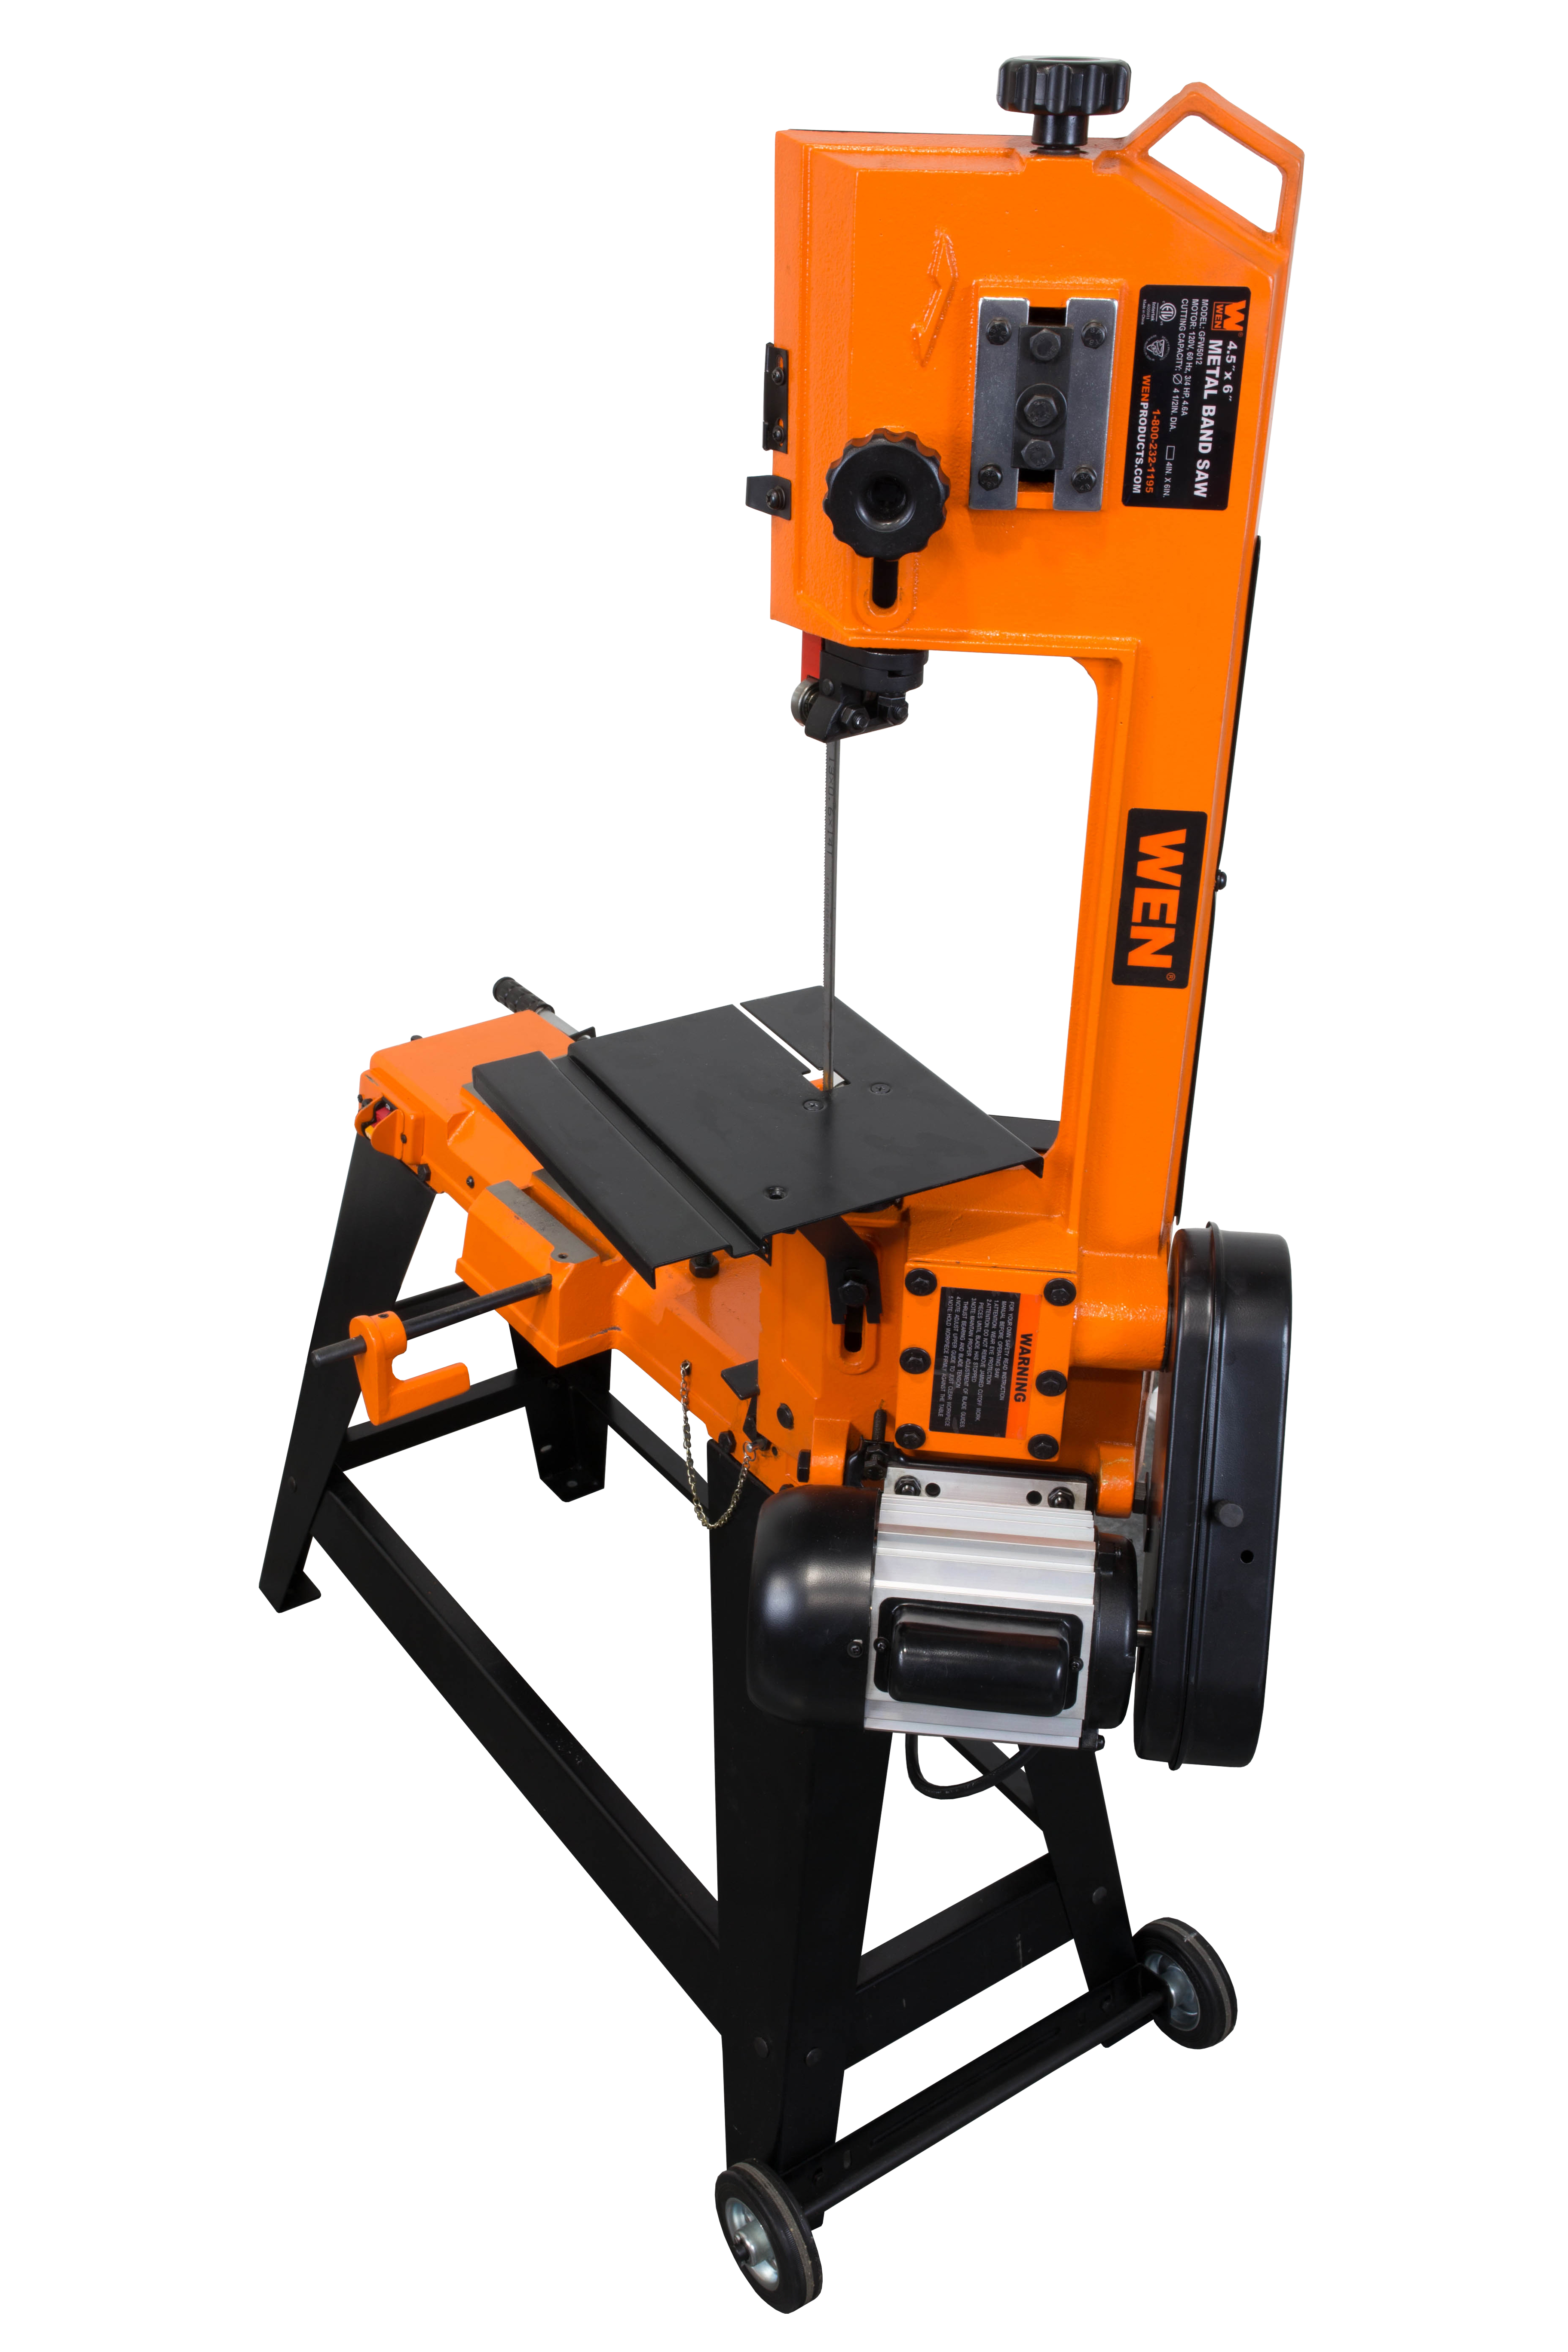 Wen 4-by-6-Inch Metal-Cutting Band Saw with Stand